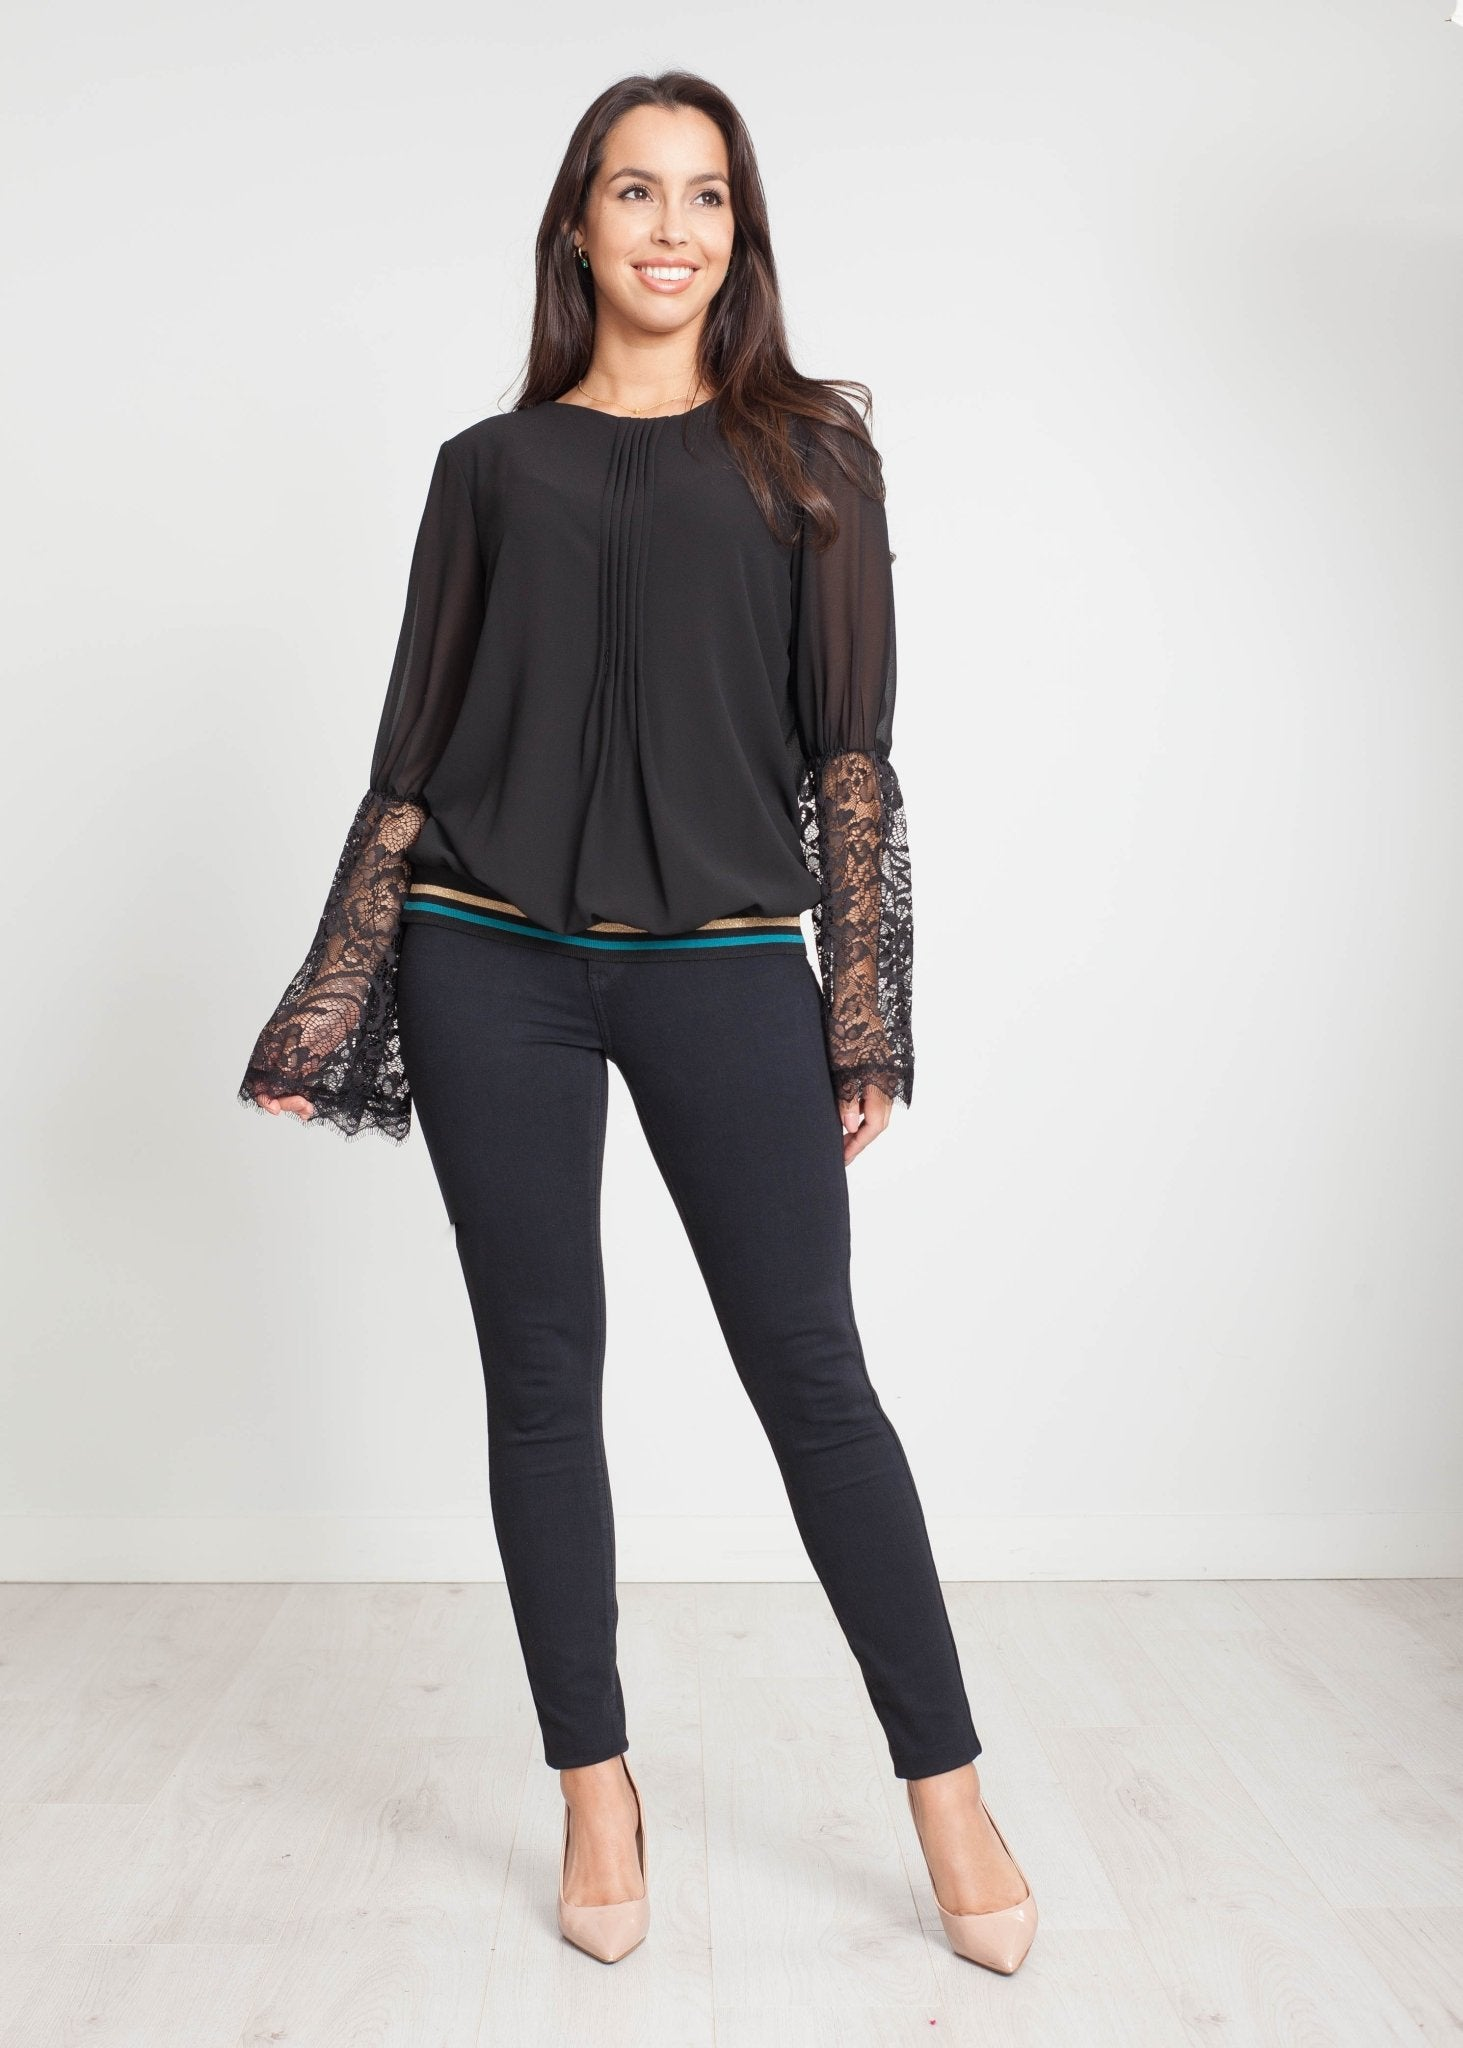 Tina Round Neck Jumper in Black - The Walk in Wardrobe